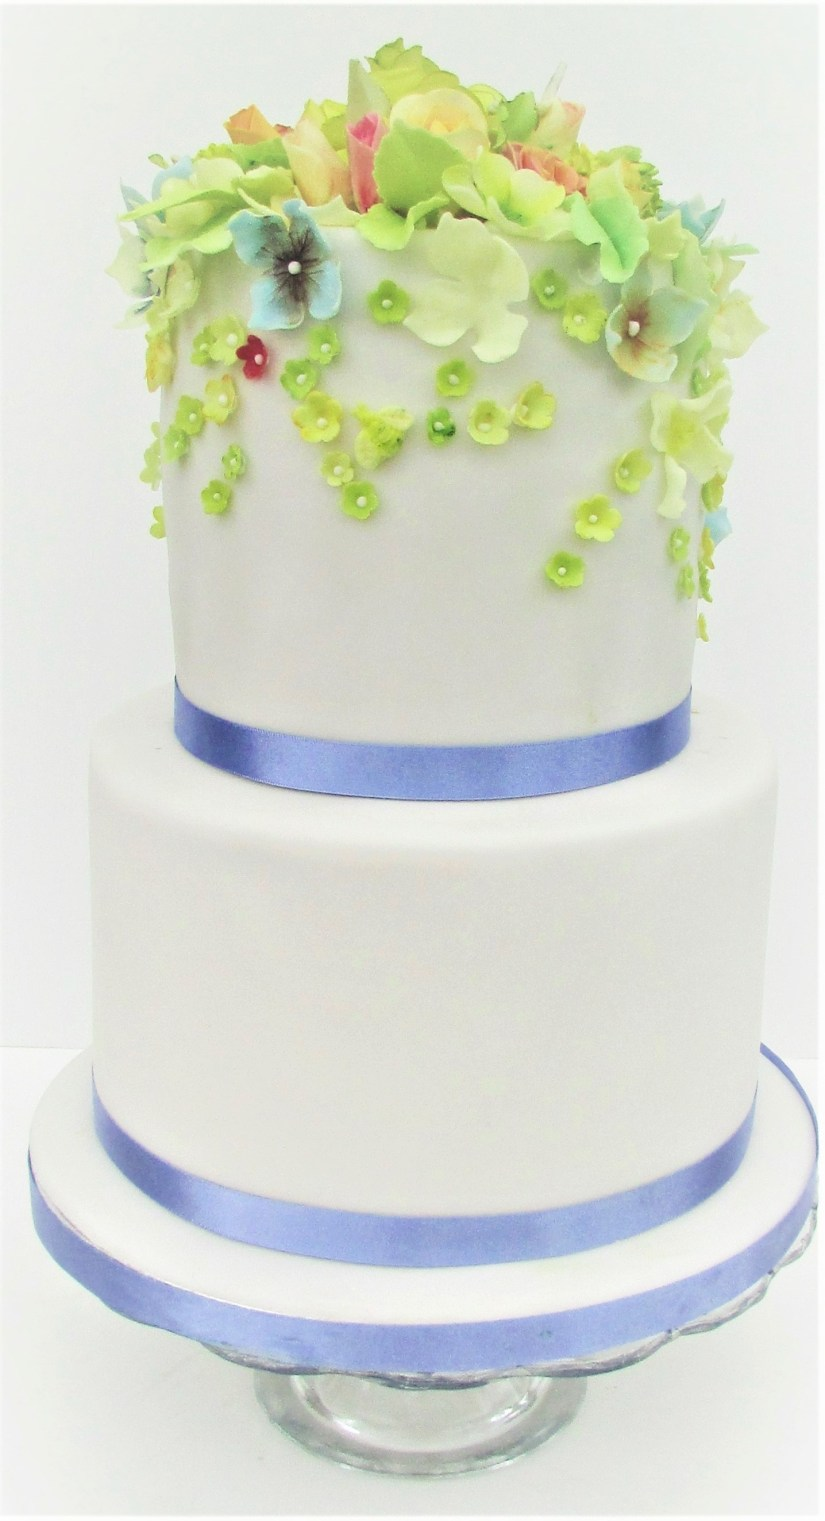 Summer Blossoms Wedding Cake with Sugar Blossoms by Cocoa & Whey Cakes in Winchester, Hampshire